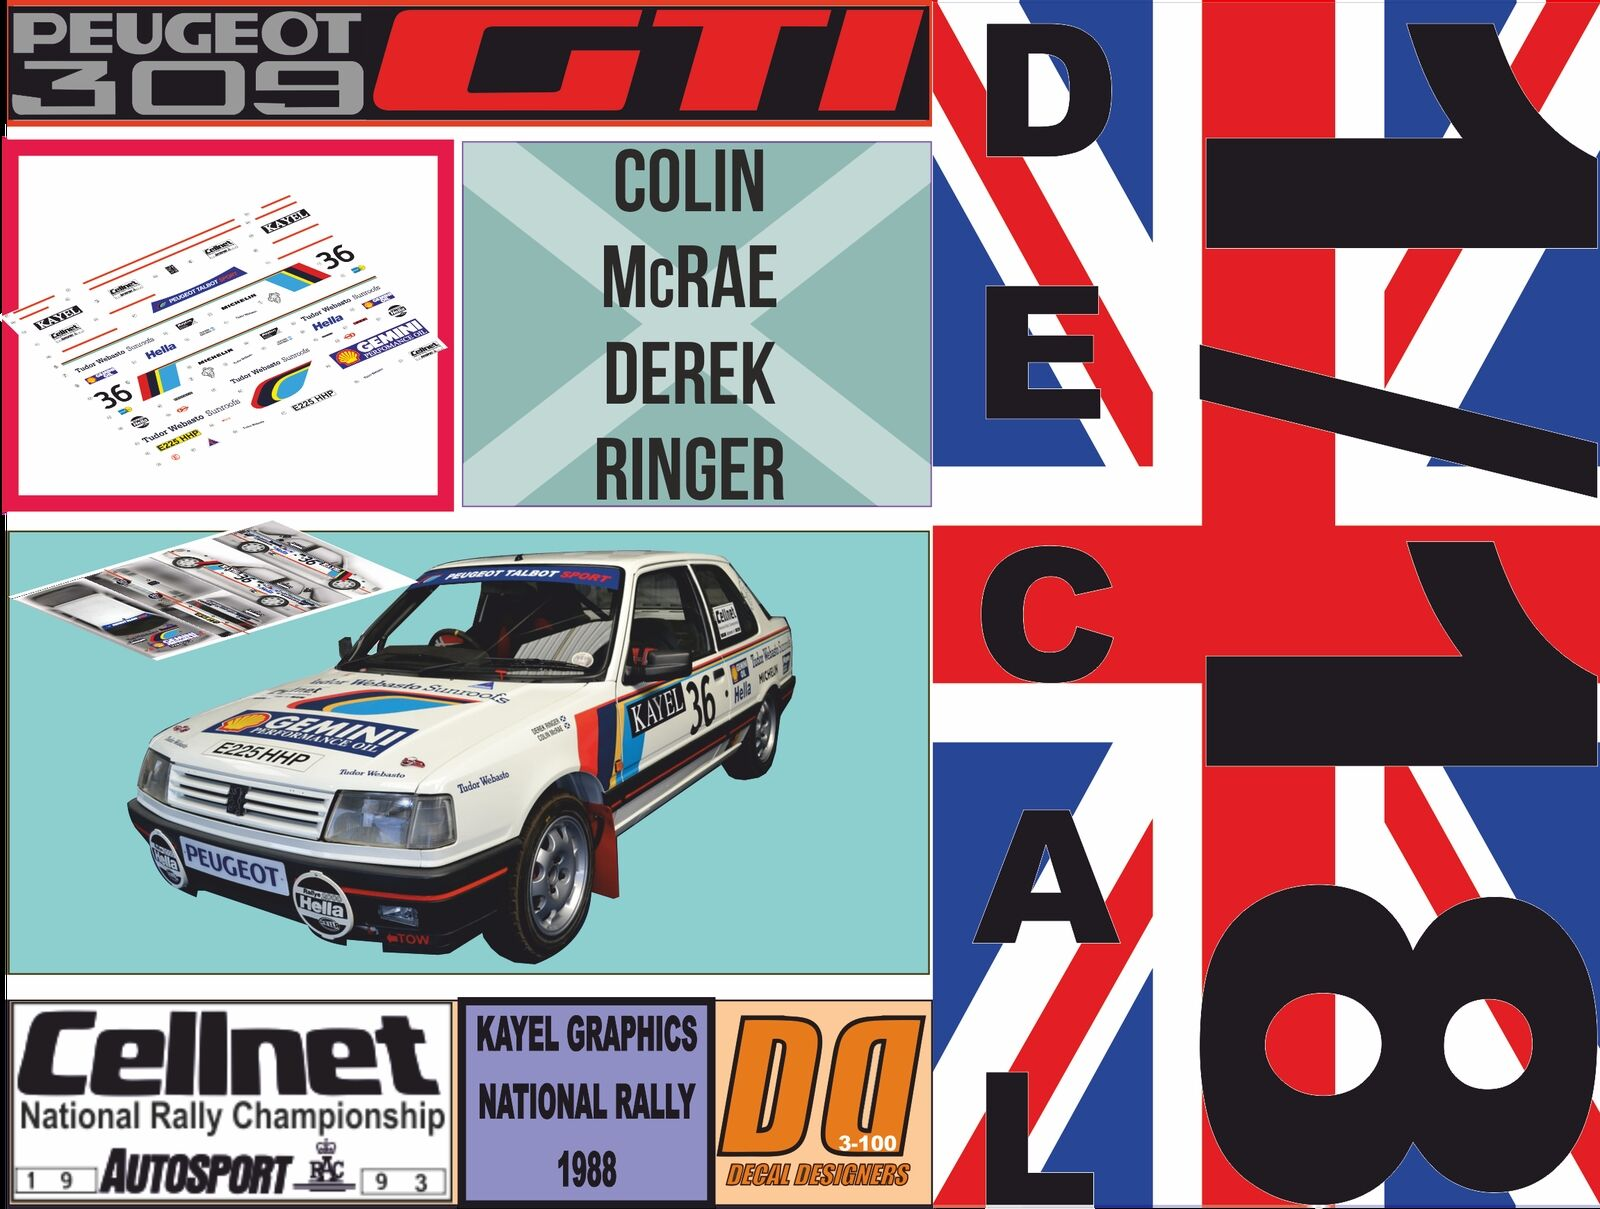 DECAL 1 18 PEUGEOT 309 GTI COLIN MCRAE NATIONAL RALLY 1988 (06)